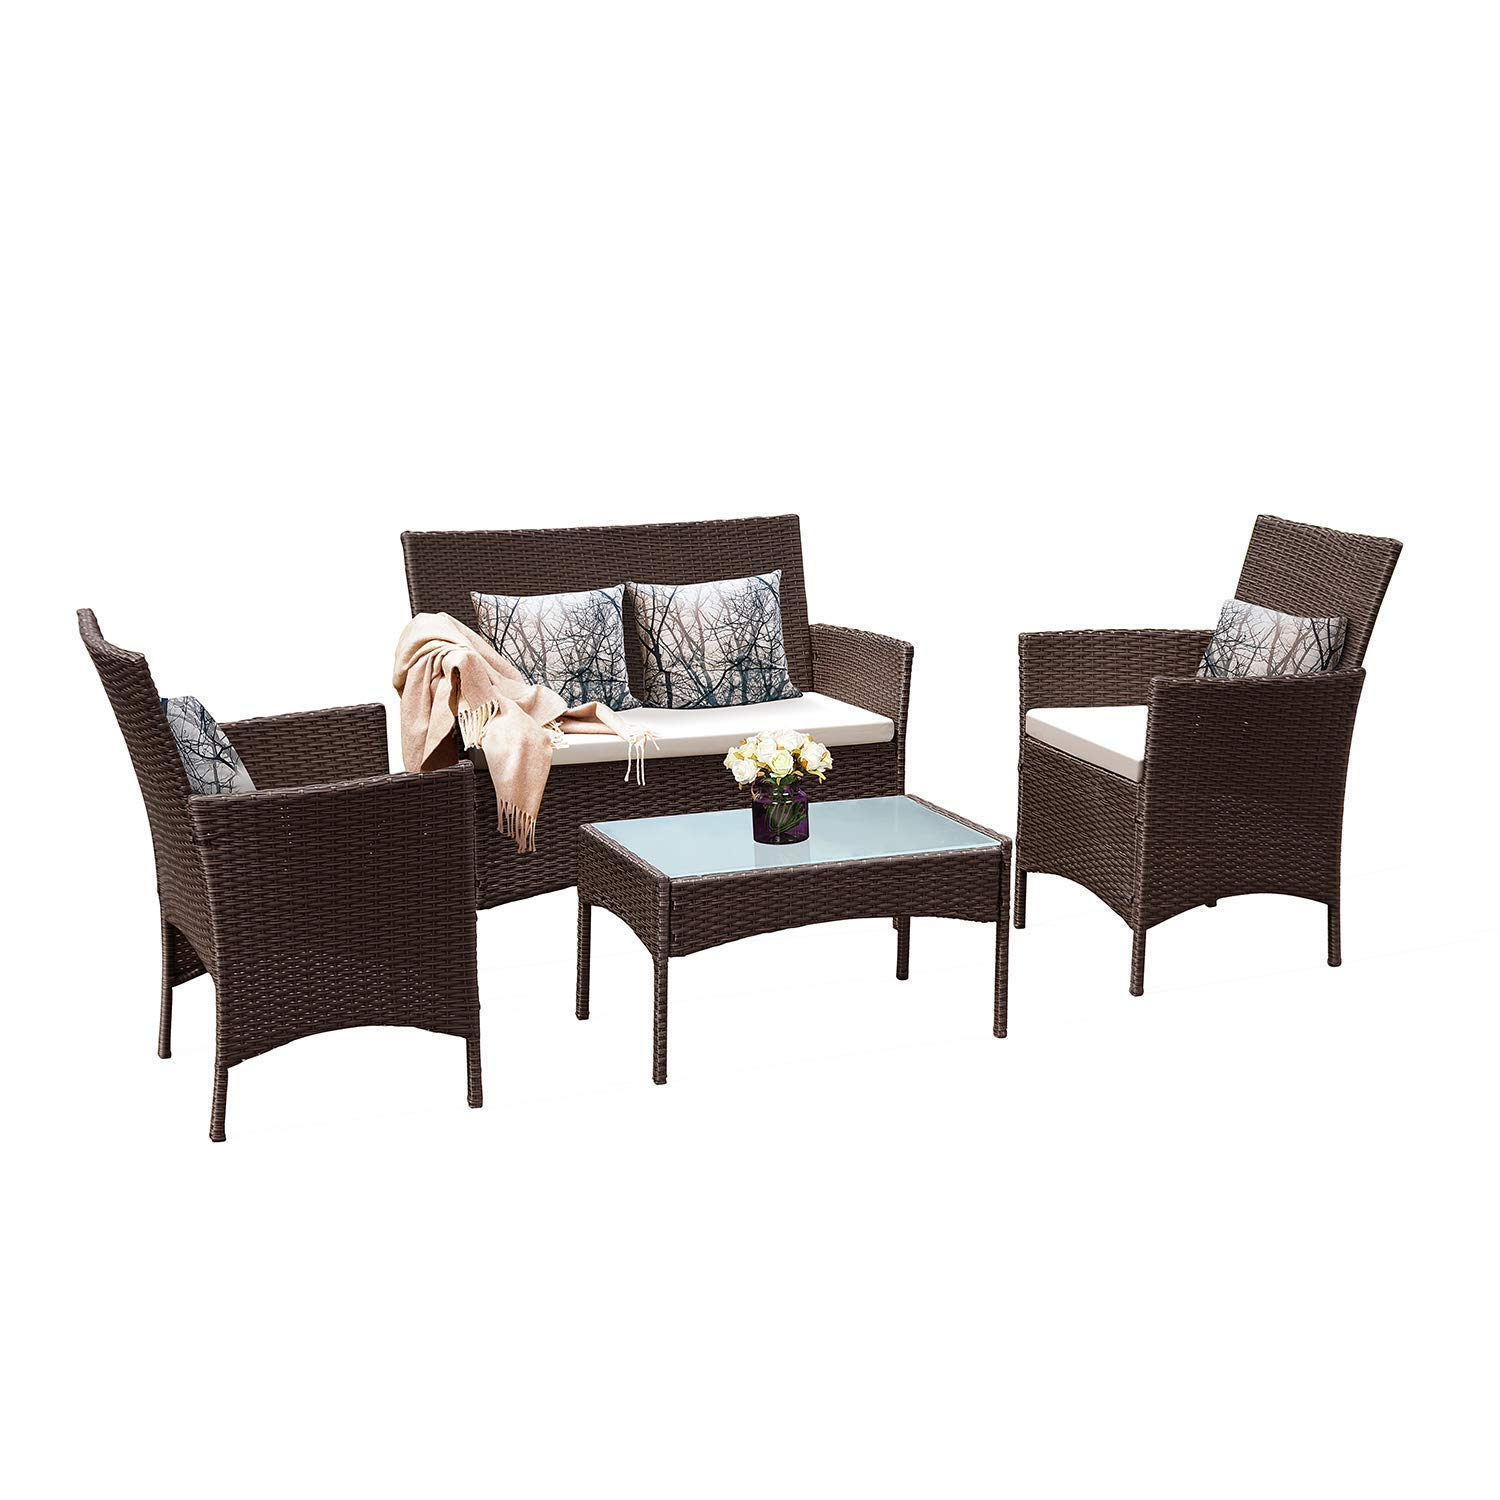 Tangkula Patio Furniture Set 4 Piece Outdoor Pool Lawn Backyard Rattan Wicker Cushioned Sofas Loveseat and Glass Top Coffee Table Conversation Set Cushions Removable Modern Patio Furniture Set